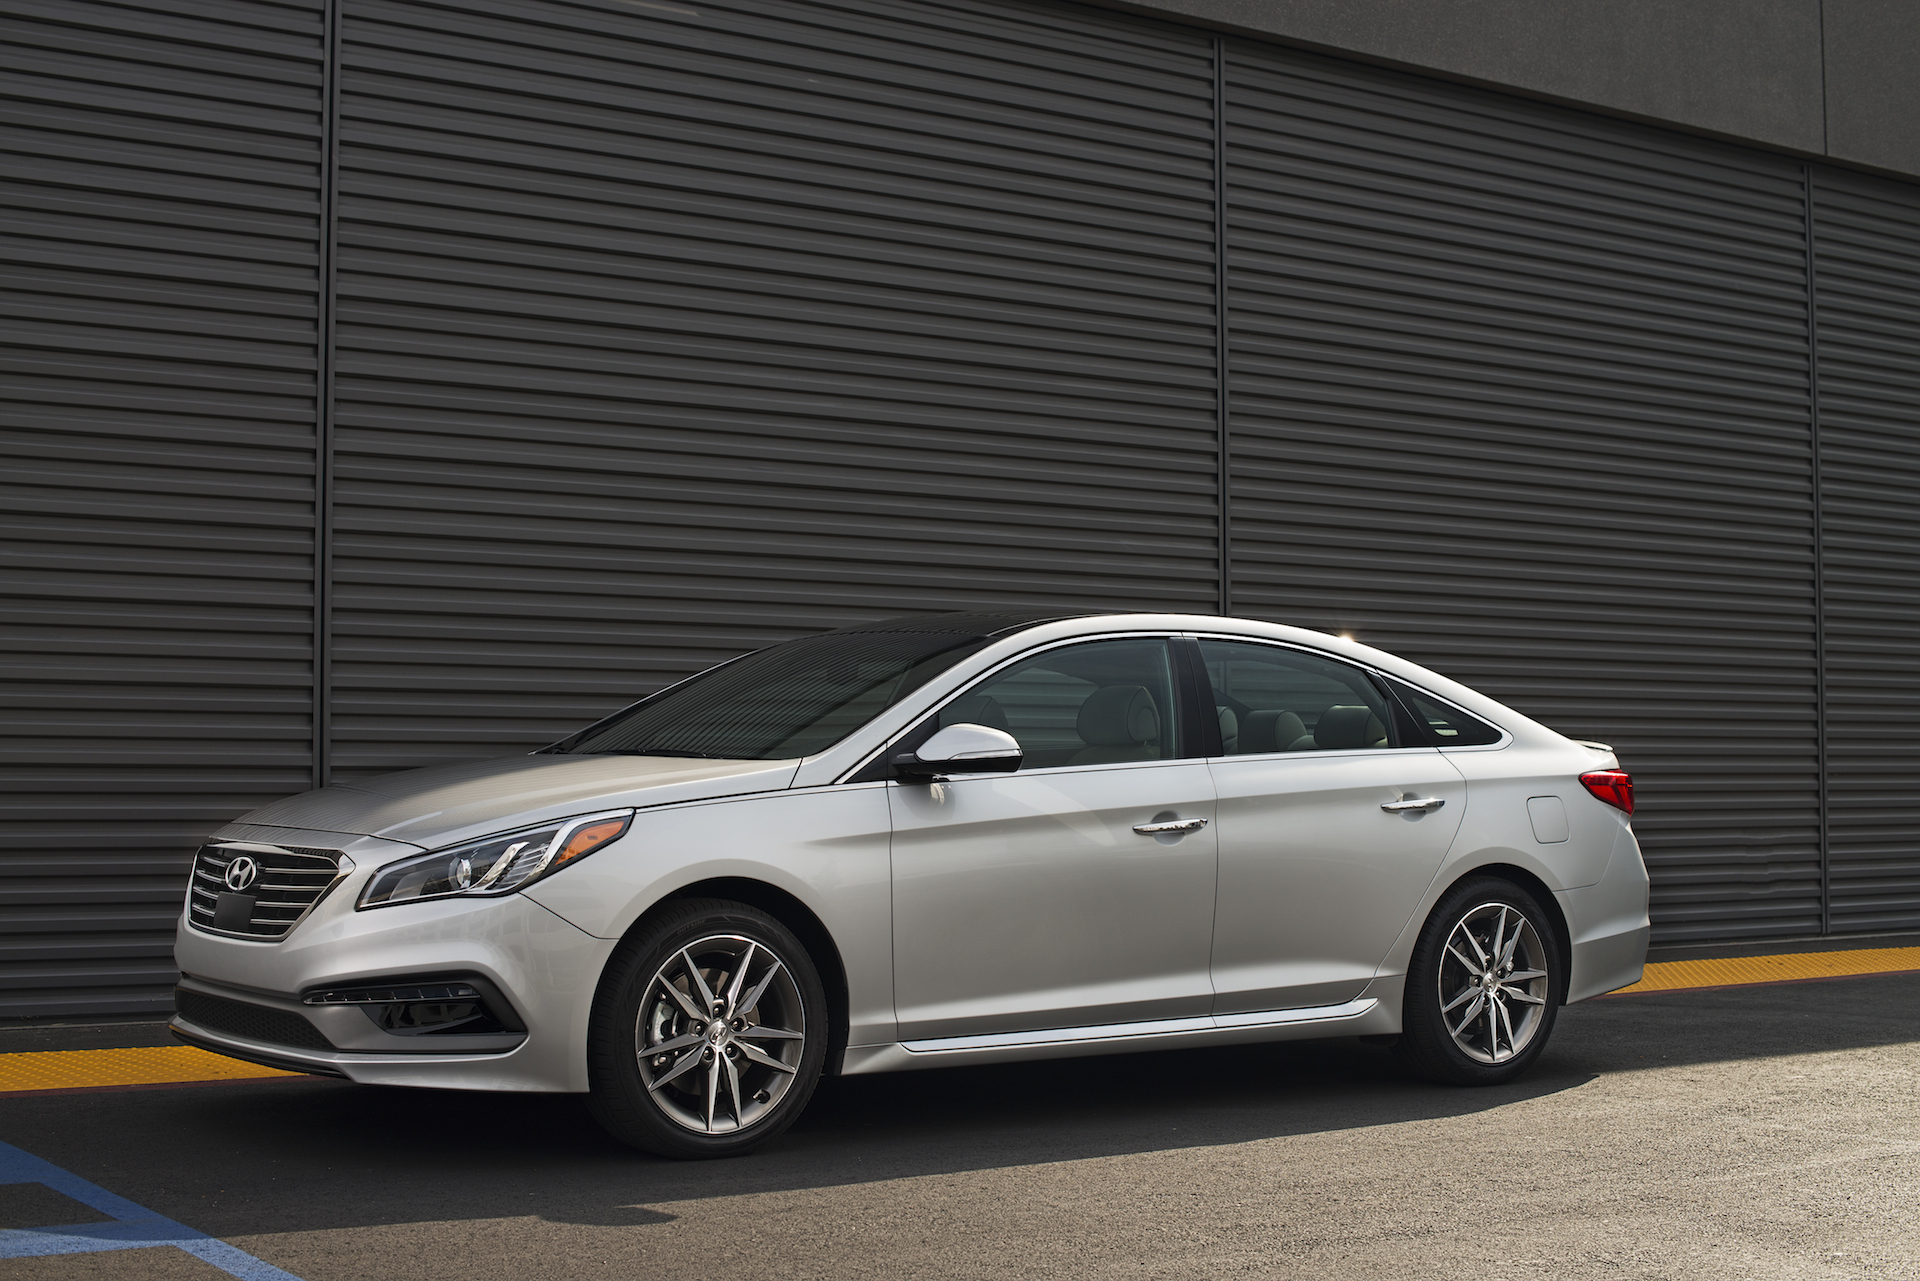 Nissan Of Fort Worth >> 2015 Hyundai Sonata Review, Ratings, Specs, Prices, and Photos - The Car Connection